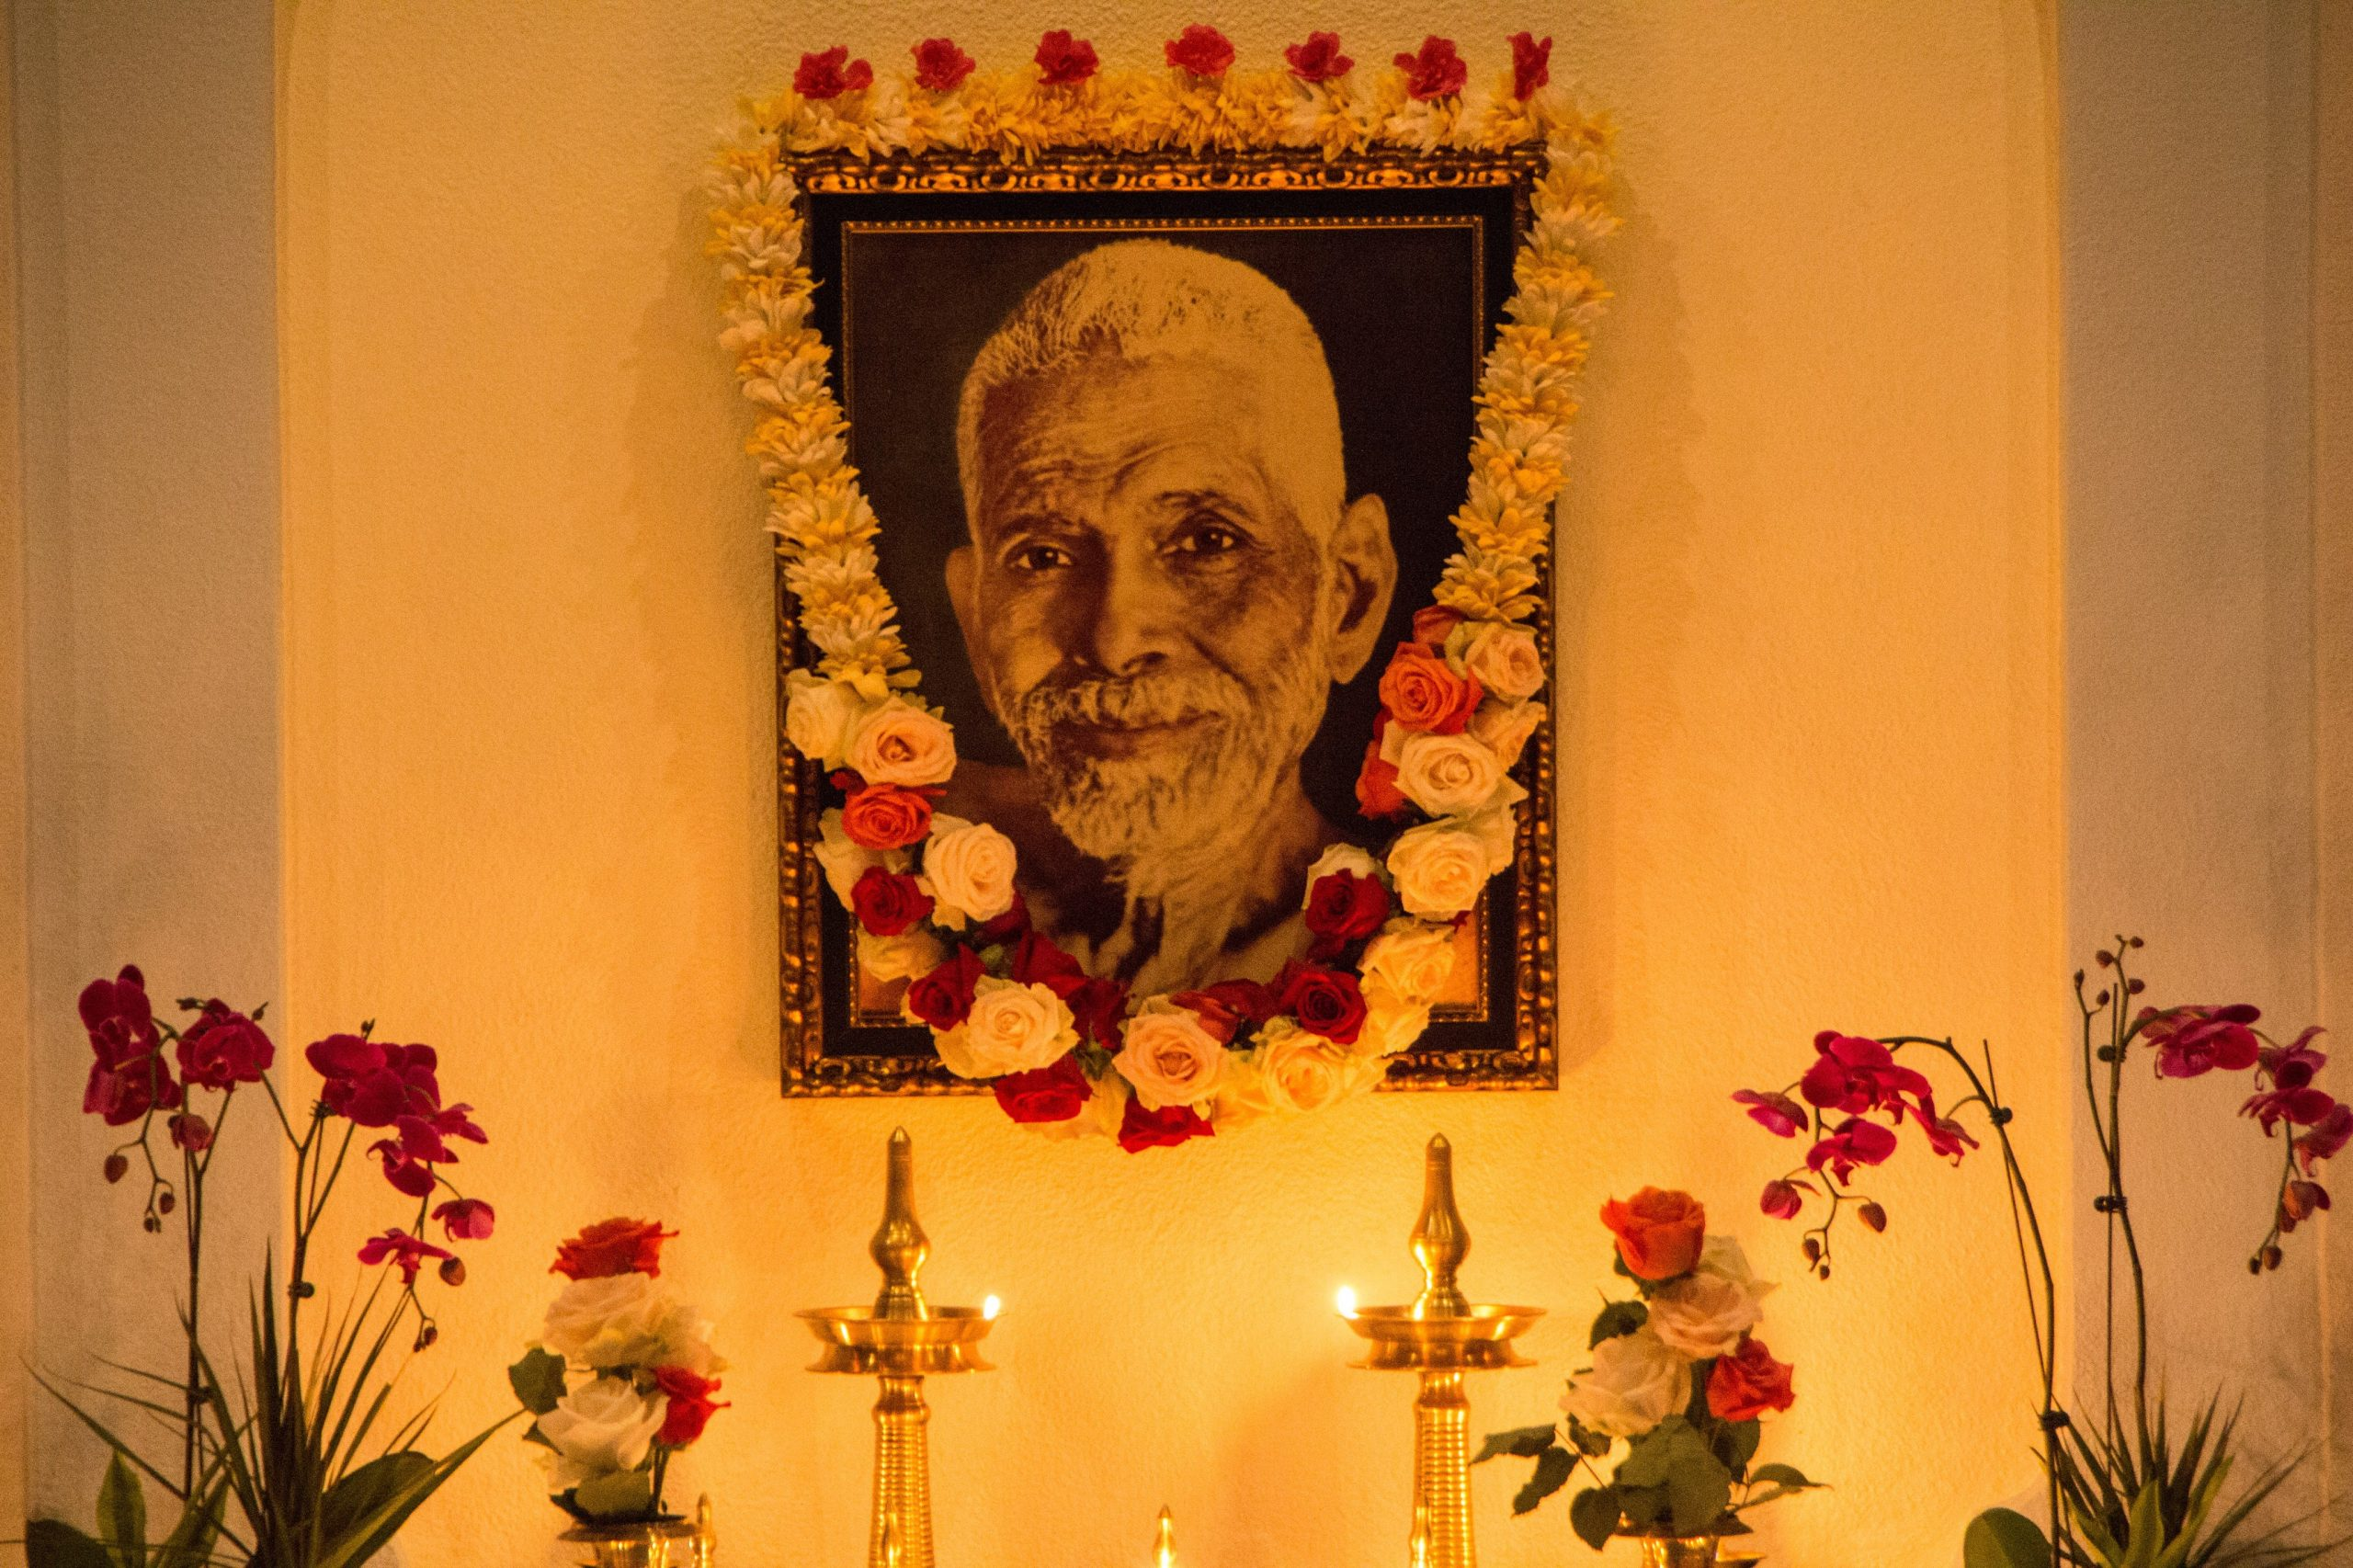 2020 Sri Ramana Maharshi Self-Realization Day